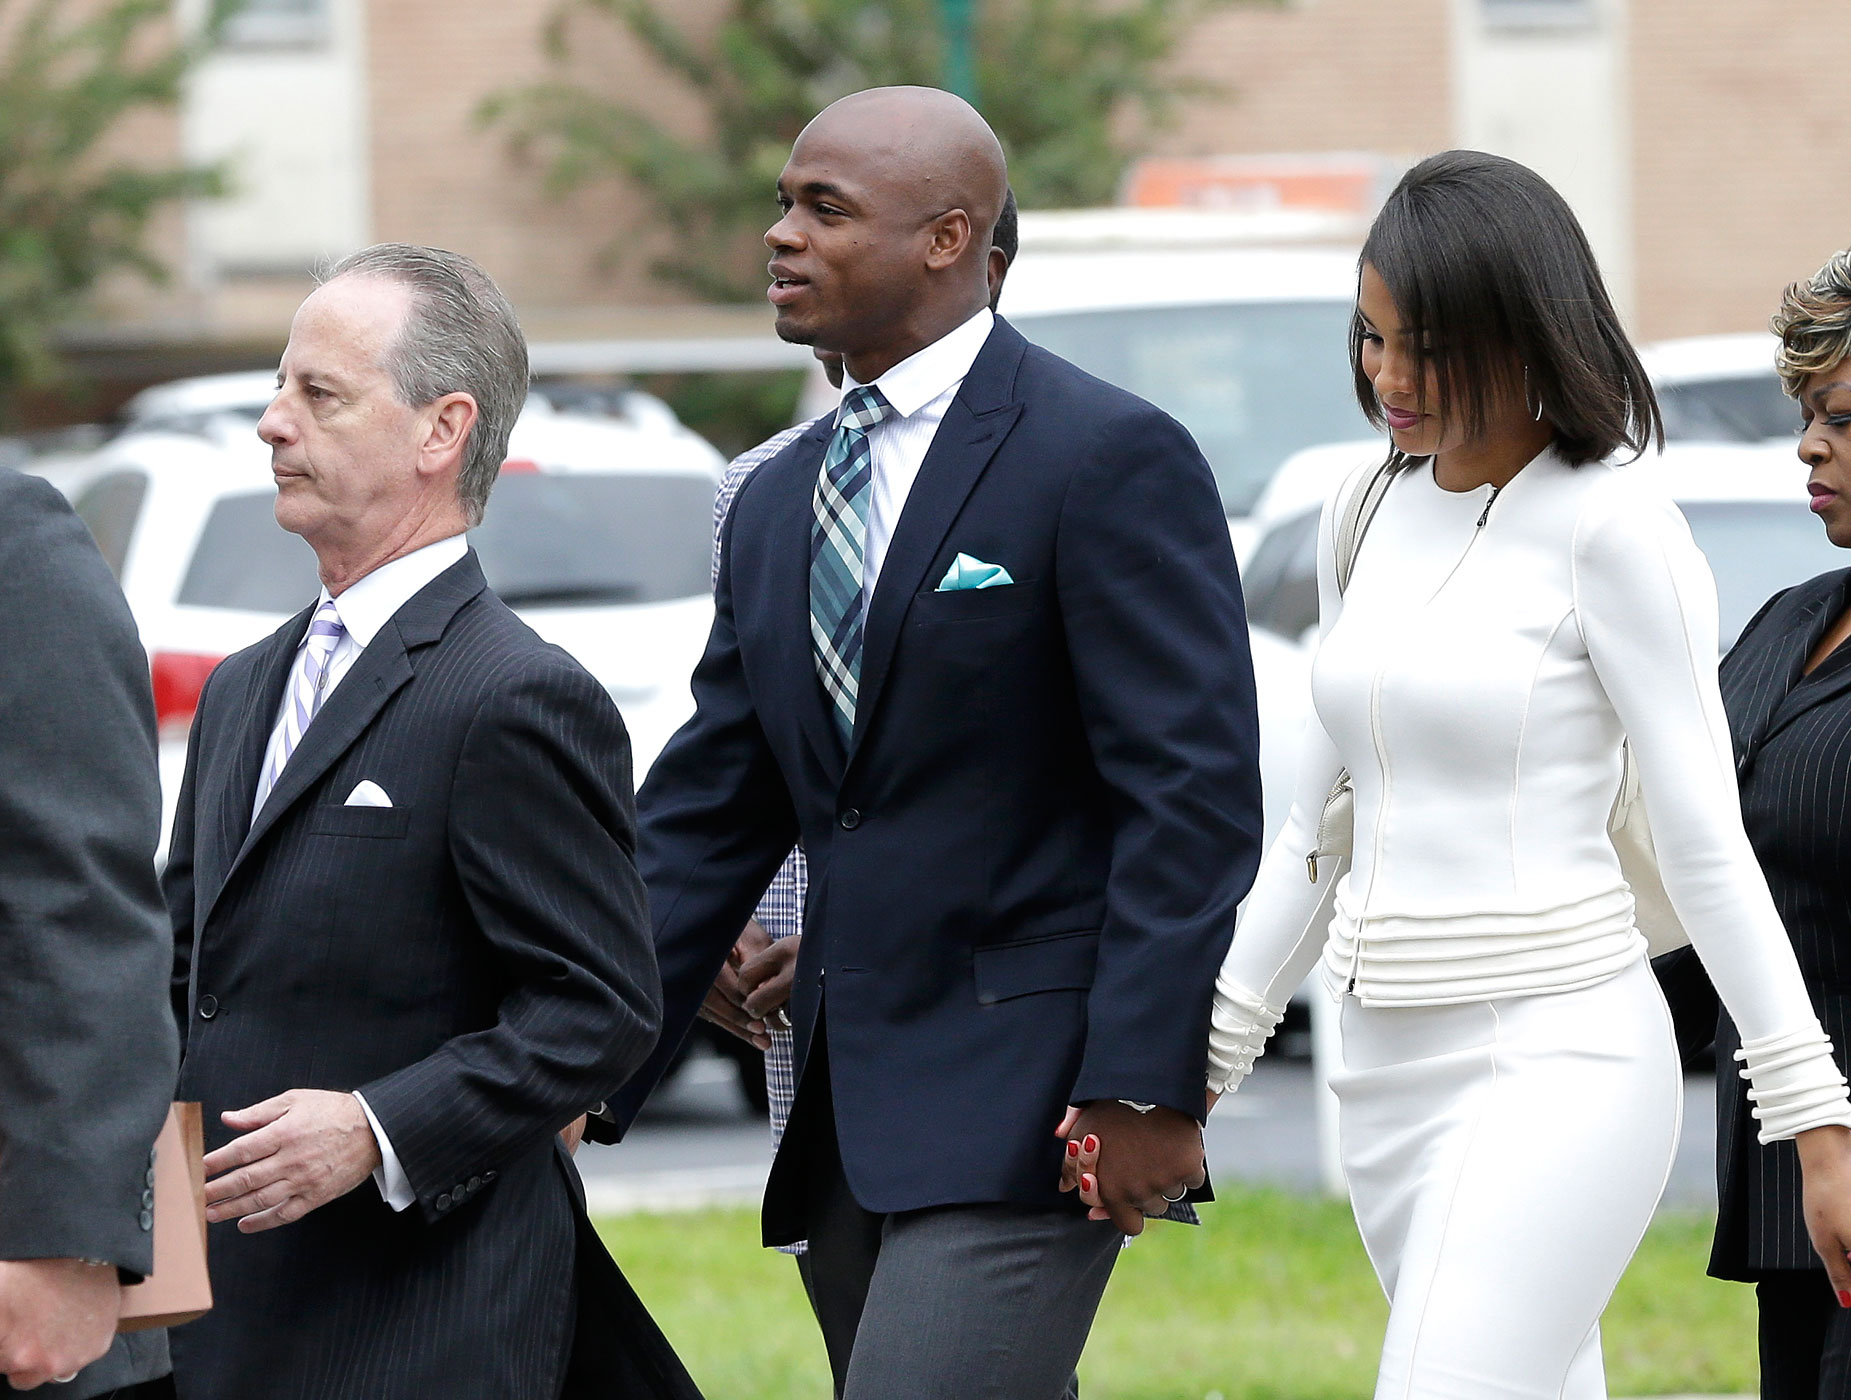 Minnesota Vikings running back Adrian Peterson, center, arrives at the courthouse with his wife Ashley Brown Peterson, right, and attorney Brian Wice, Nov. 4, 2014, in Conroe, Texas.